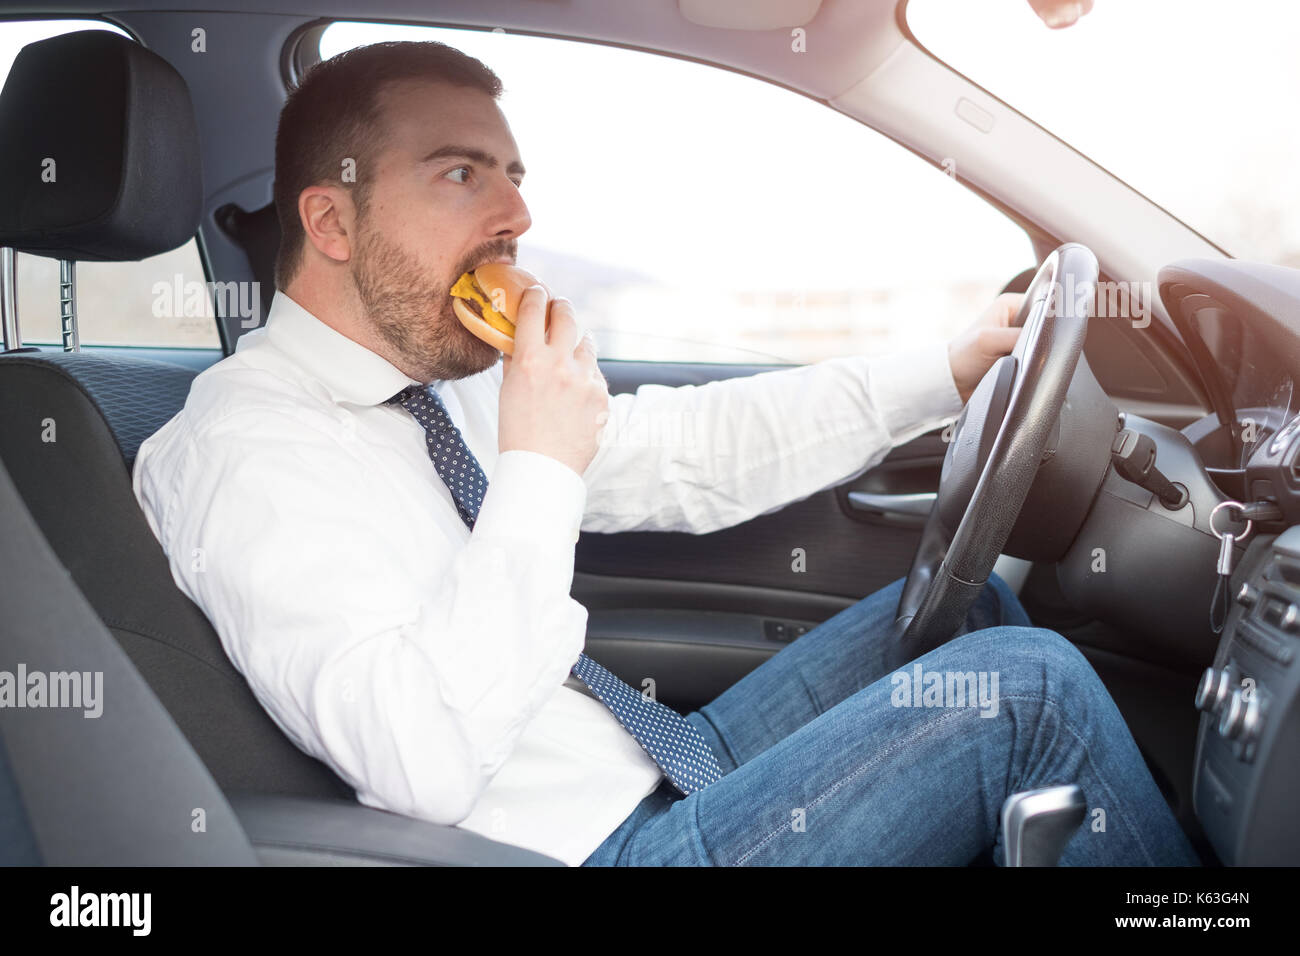 Man eating an hamburger and driving seated in his car - Stock Image